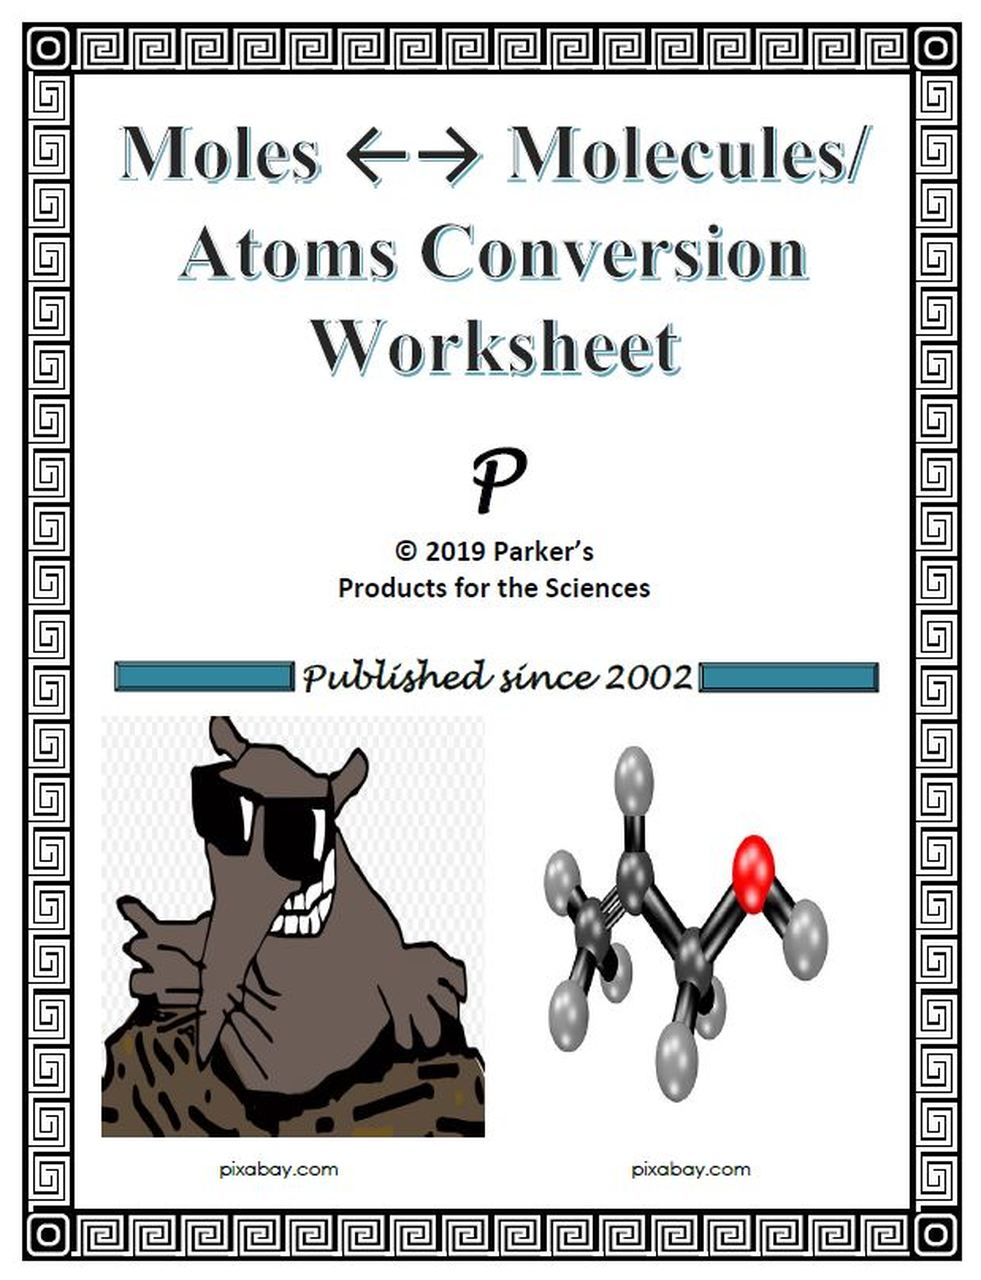 Moles to Molecules Conversion Worksheet Chemistry